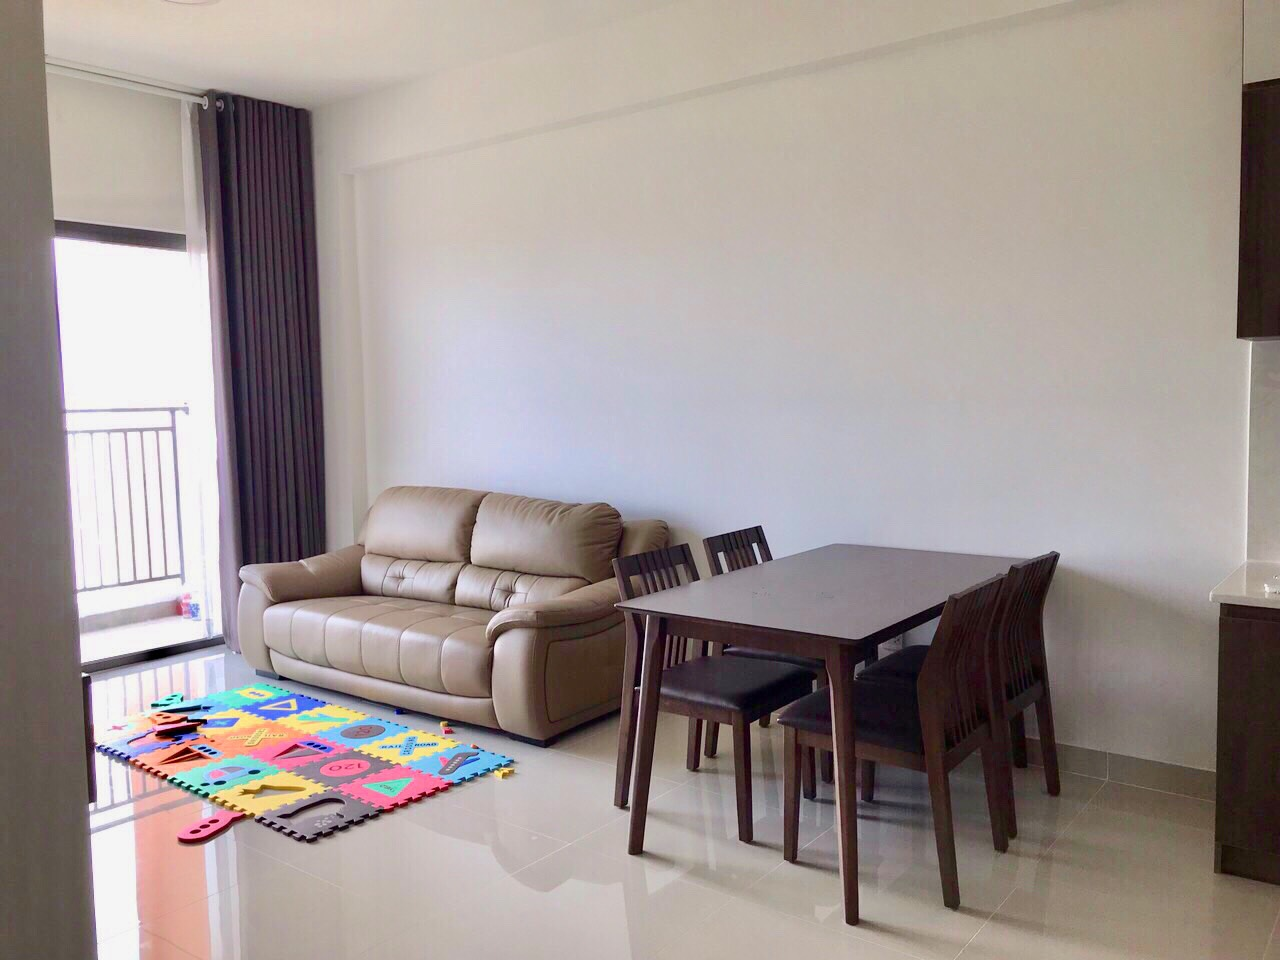 Apartment for rent D227086 (4)